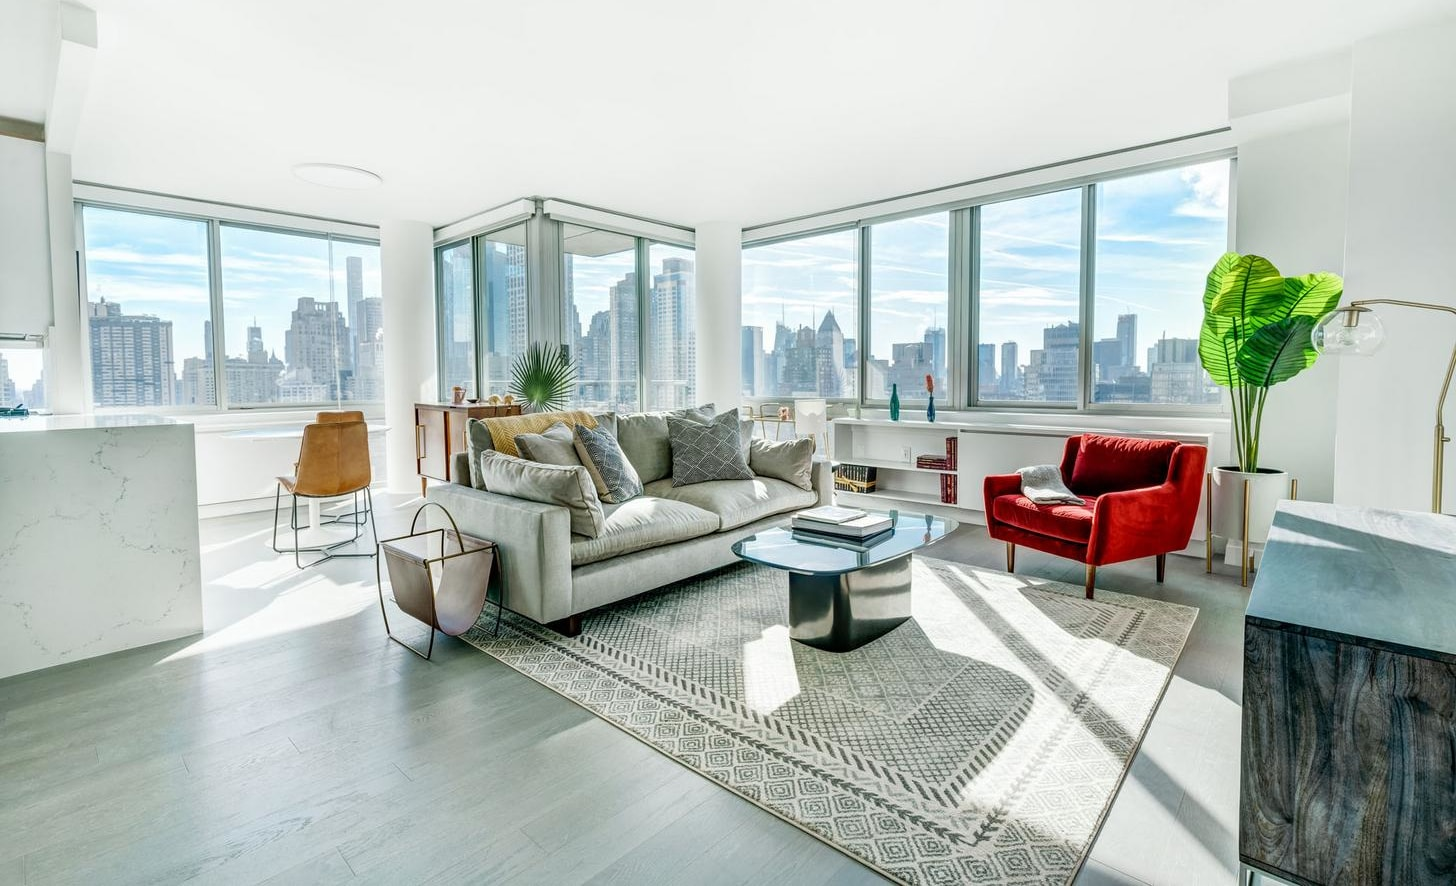 100 Best Furnished Apartments in New York, NY (with pics)!